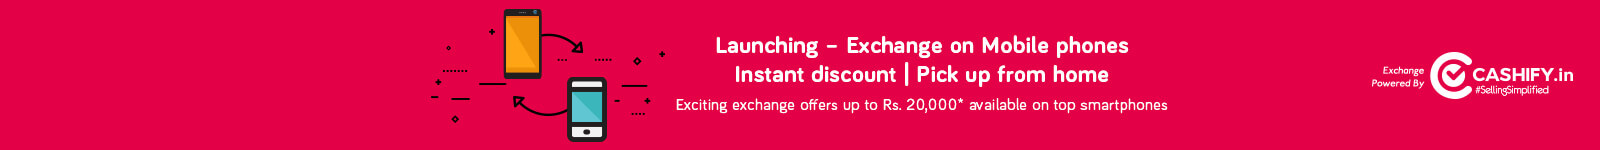 snapdeal_cashify_mobile_exchange_offer_19oct